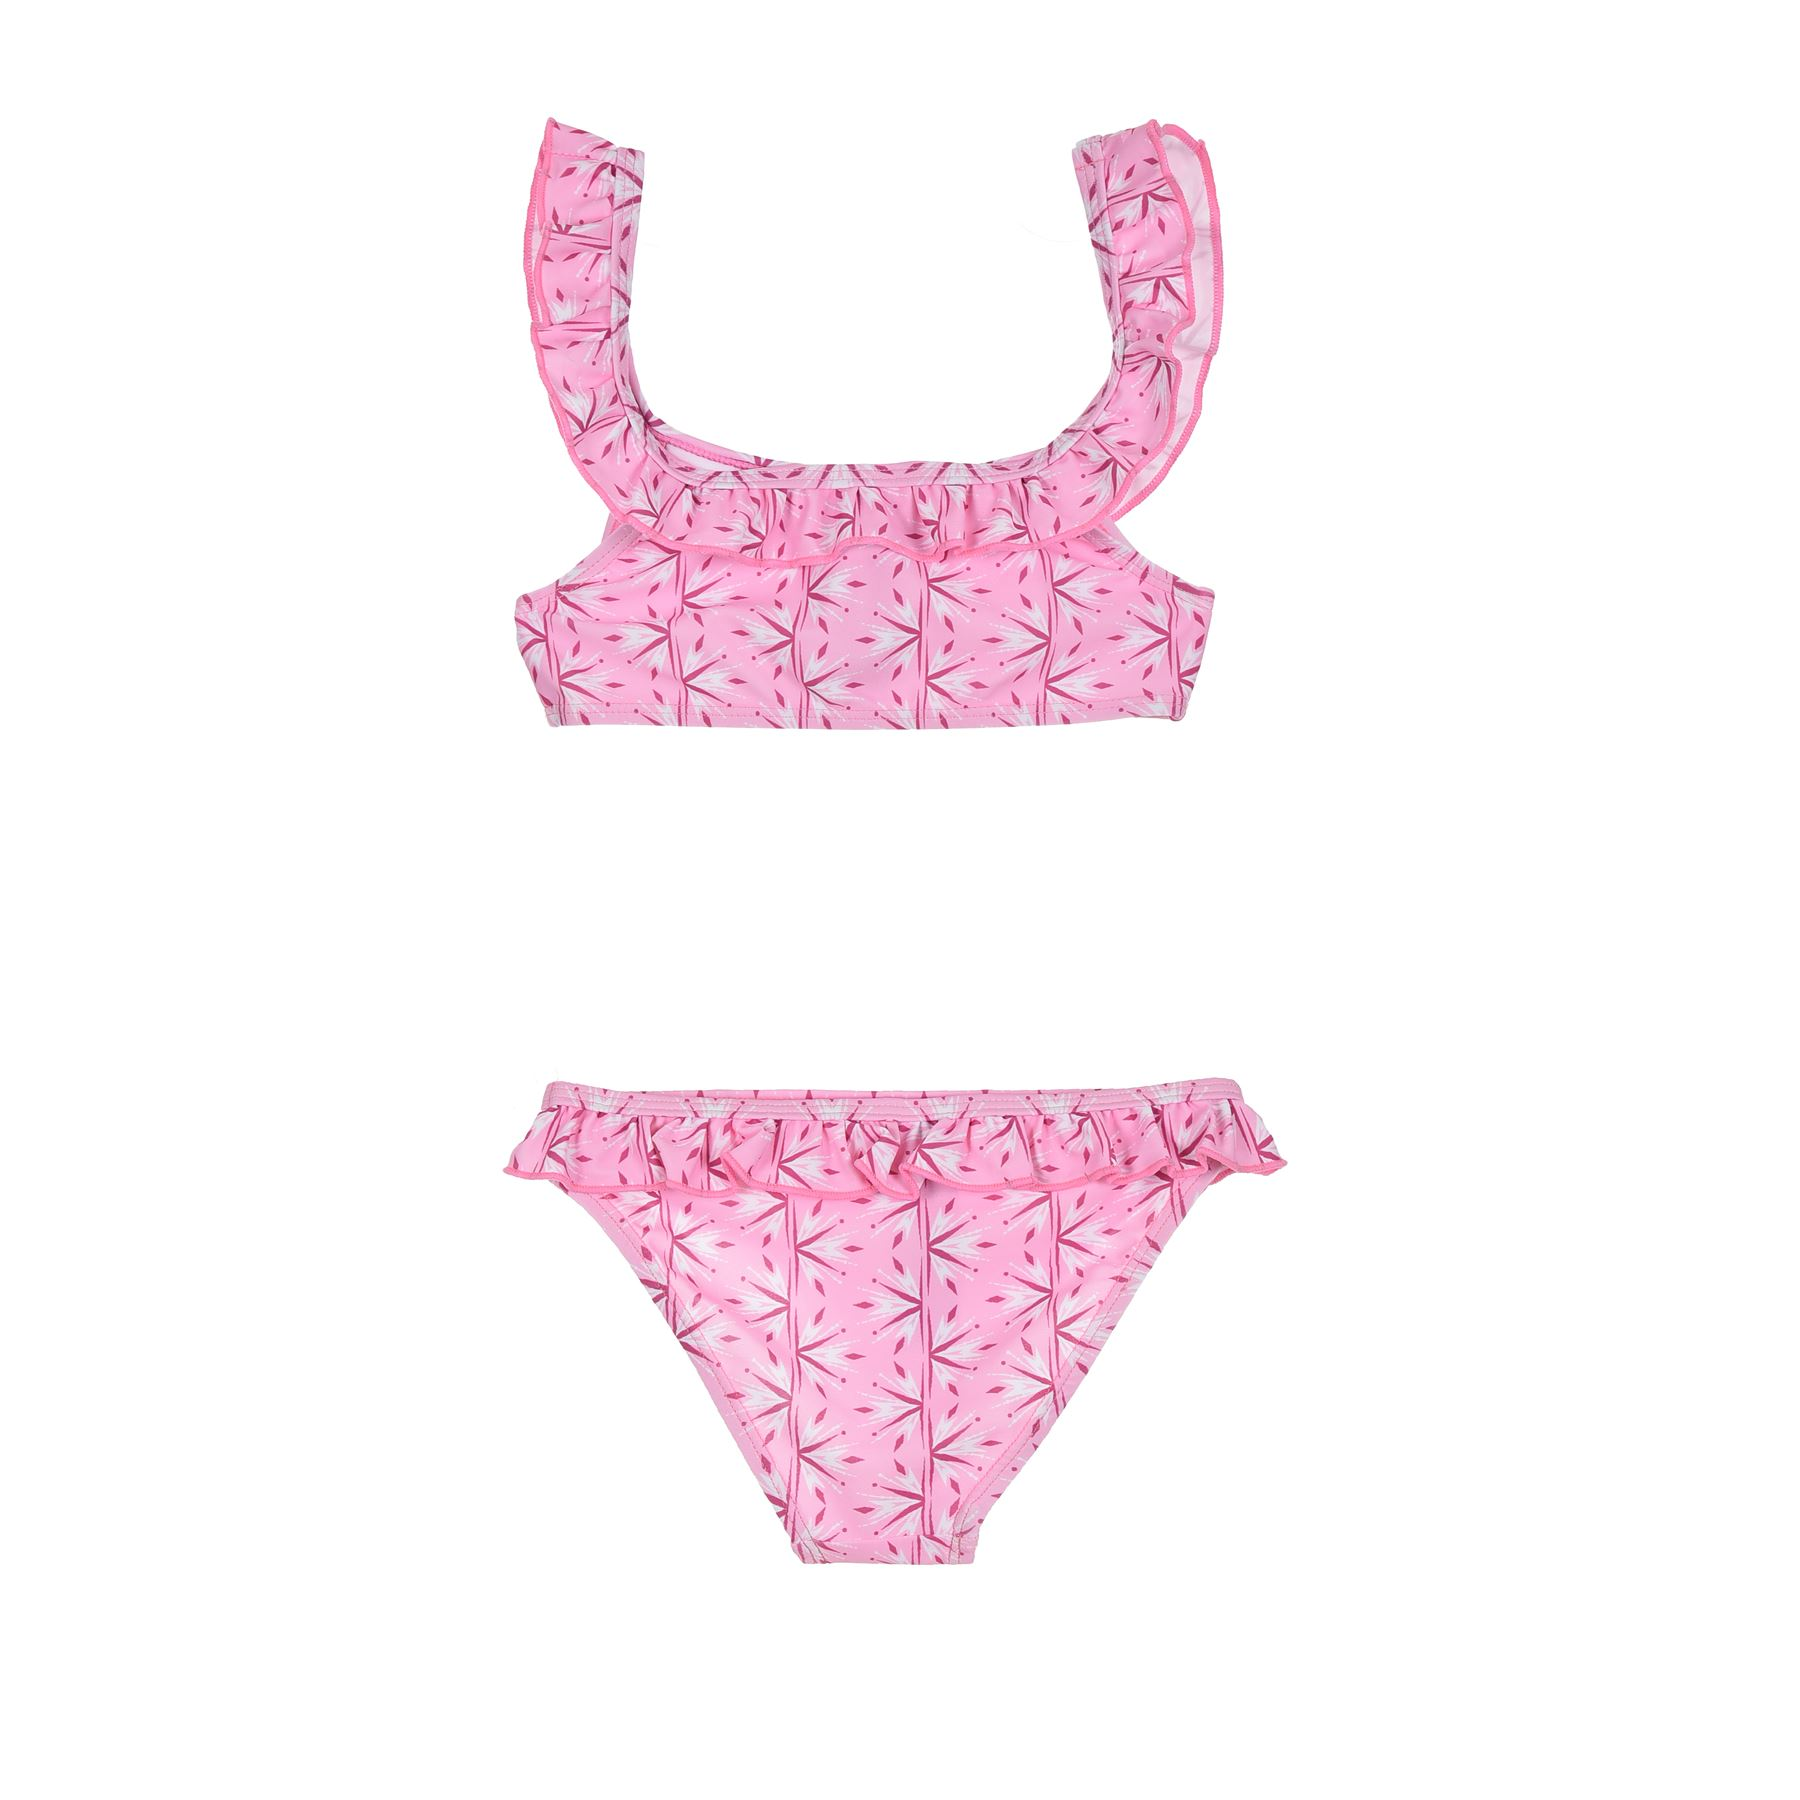 Girls-Bikini-Set-Childrens-Kids-Swimming-Costume-Age-3-8-Years thumbnail 26